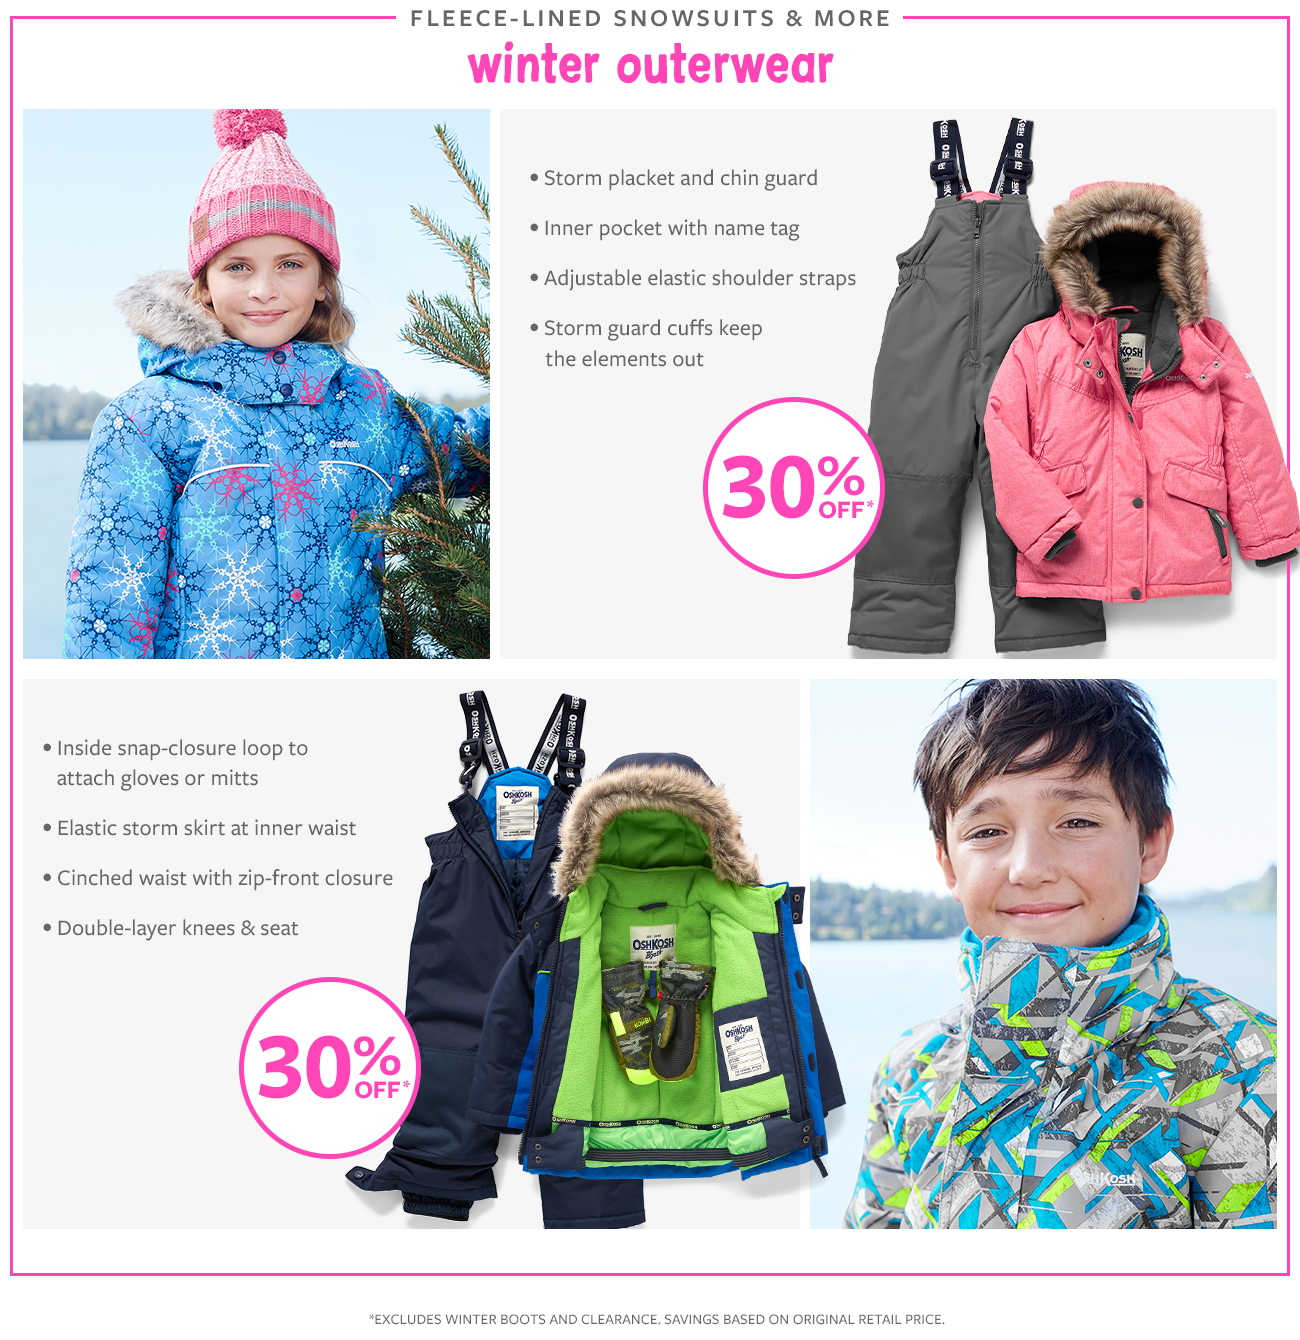 30% off   fleece-lined snowsuits & more winter outerwear